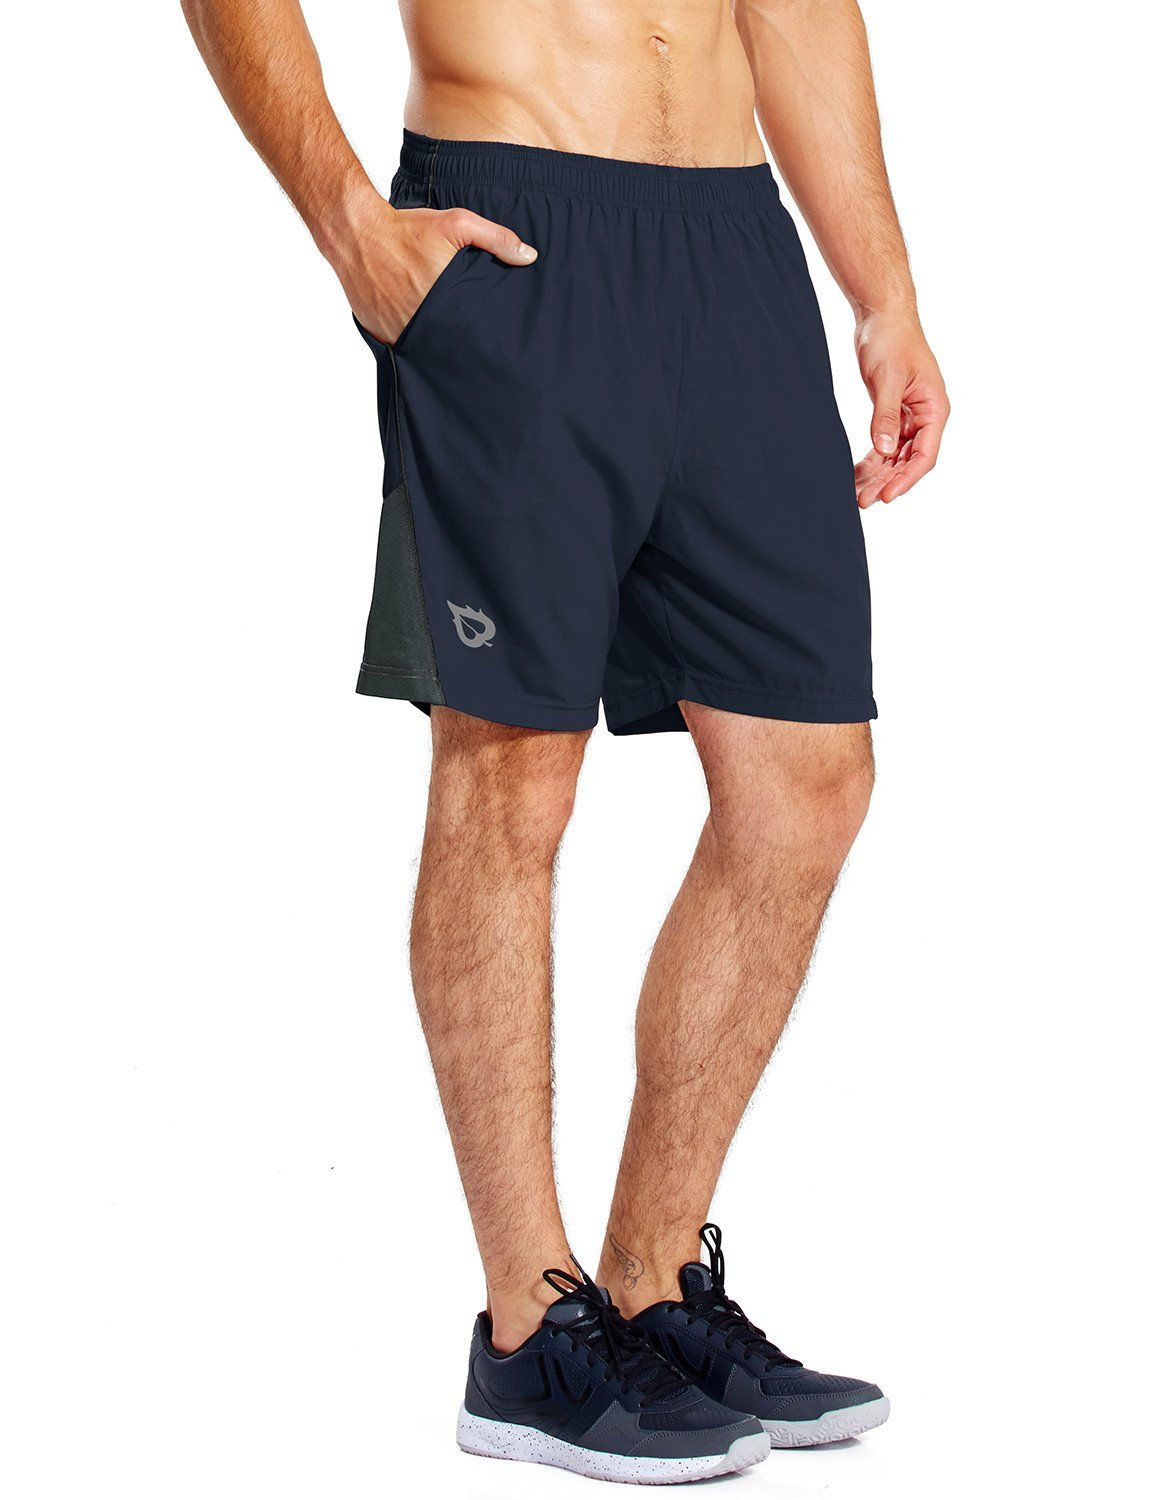 Baleaf Men's 7 Inches Quick Dry Workout Running Shorts Mesh Liner Zip Pockets Navy Size S